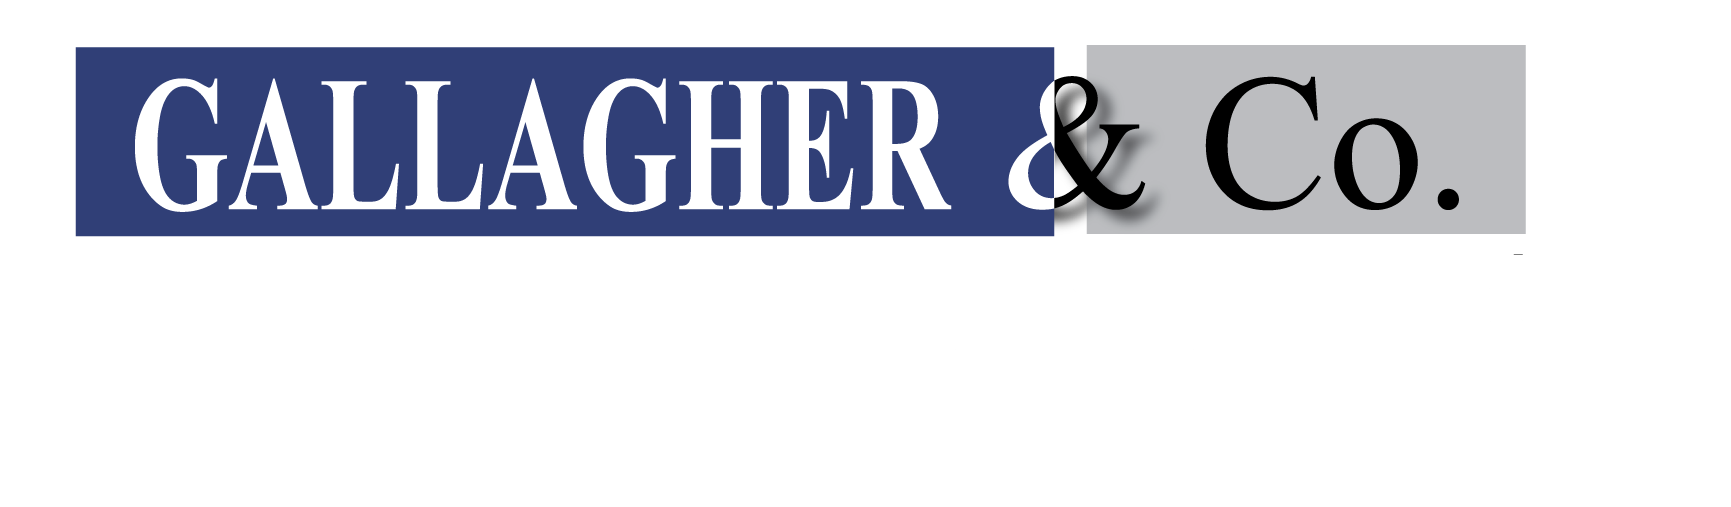 Gallagher & Co Consultants